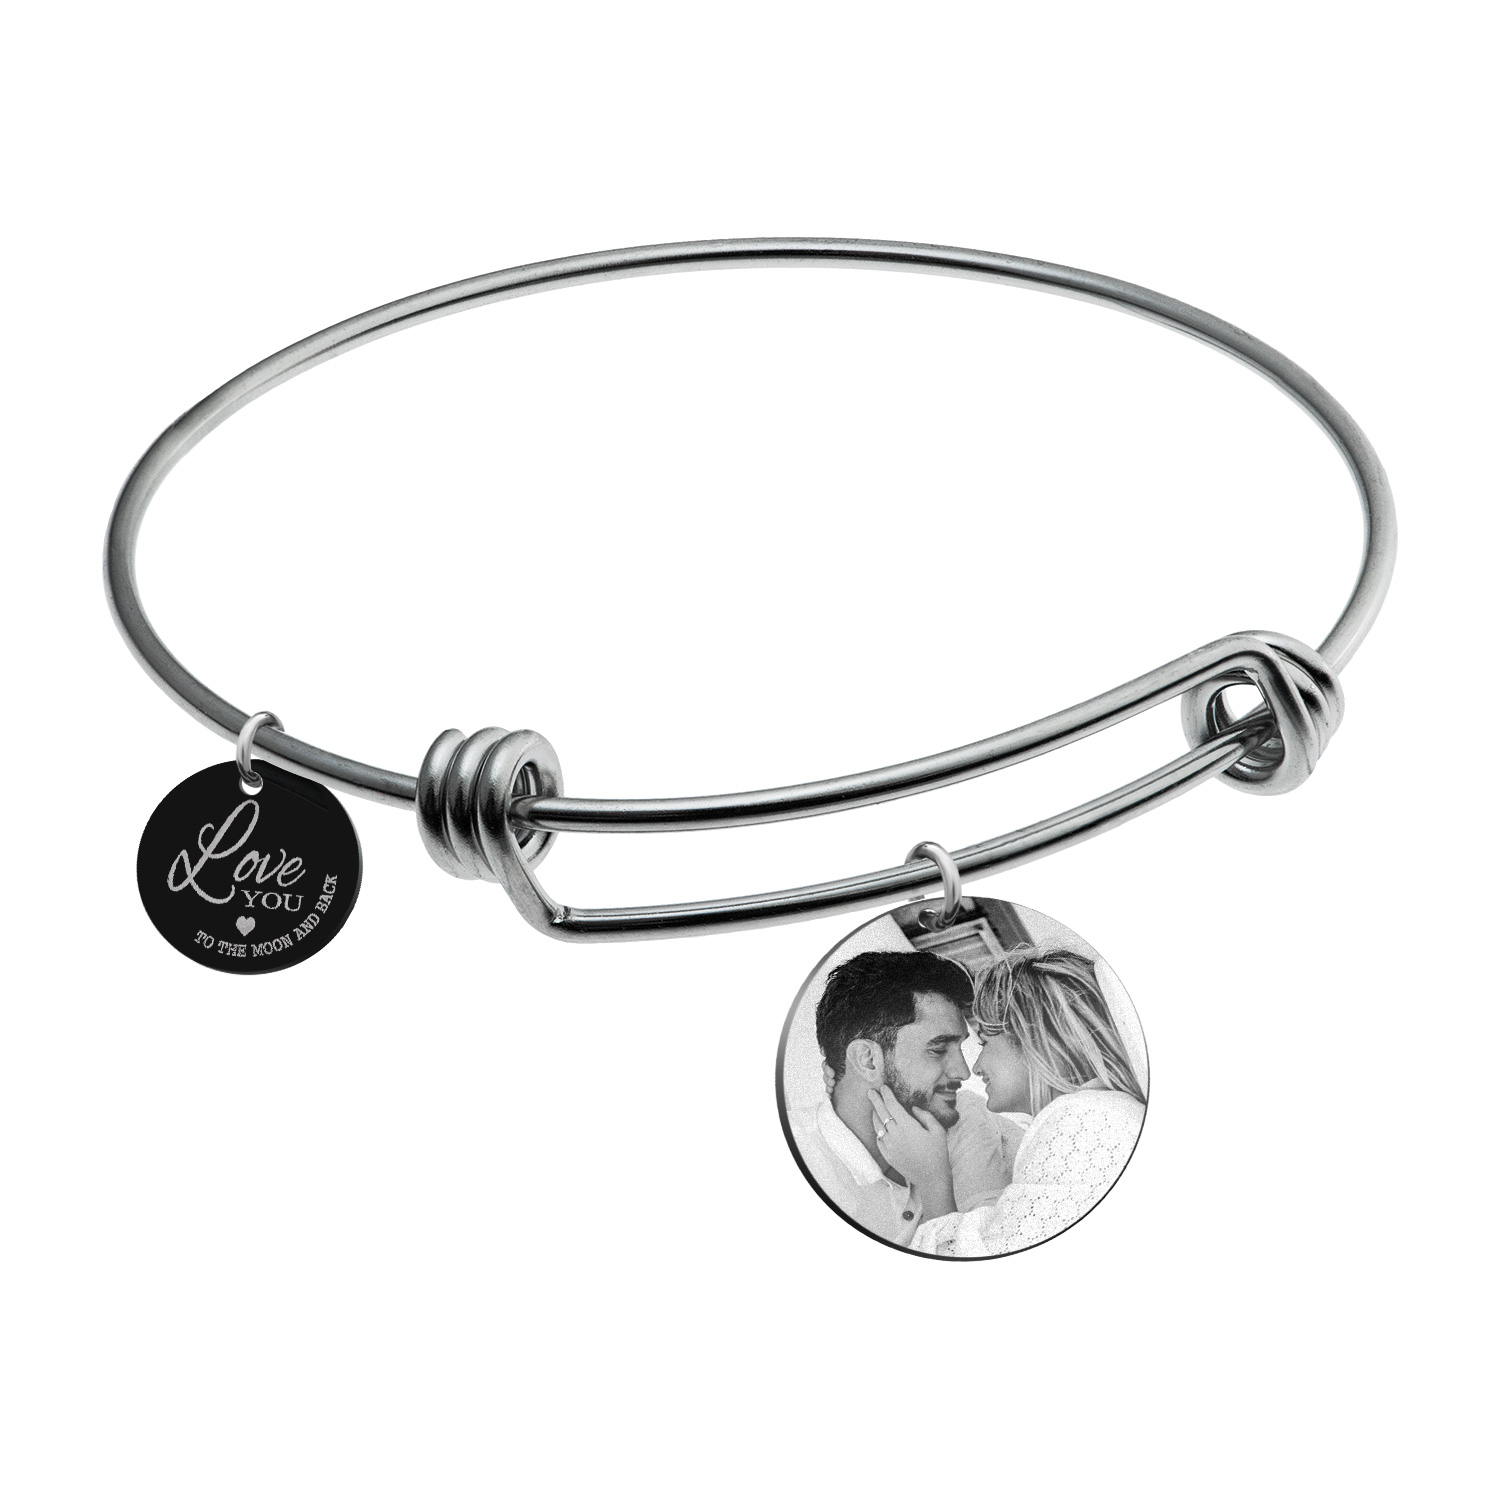 Qina C. Love You to the Moon and Back Personalized Photo Engrave Dangle Charm Adjustable Wire Bangle Bracelet Inspirational Gift